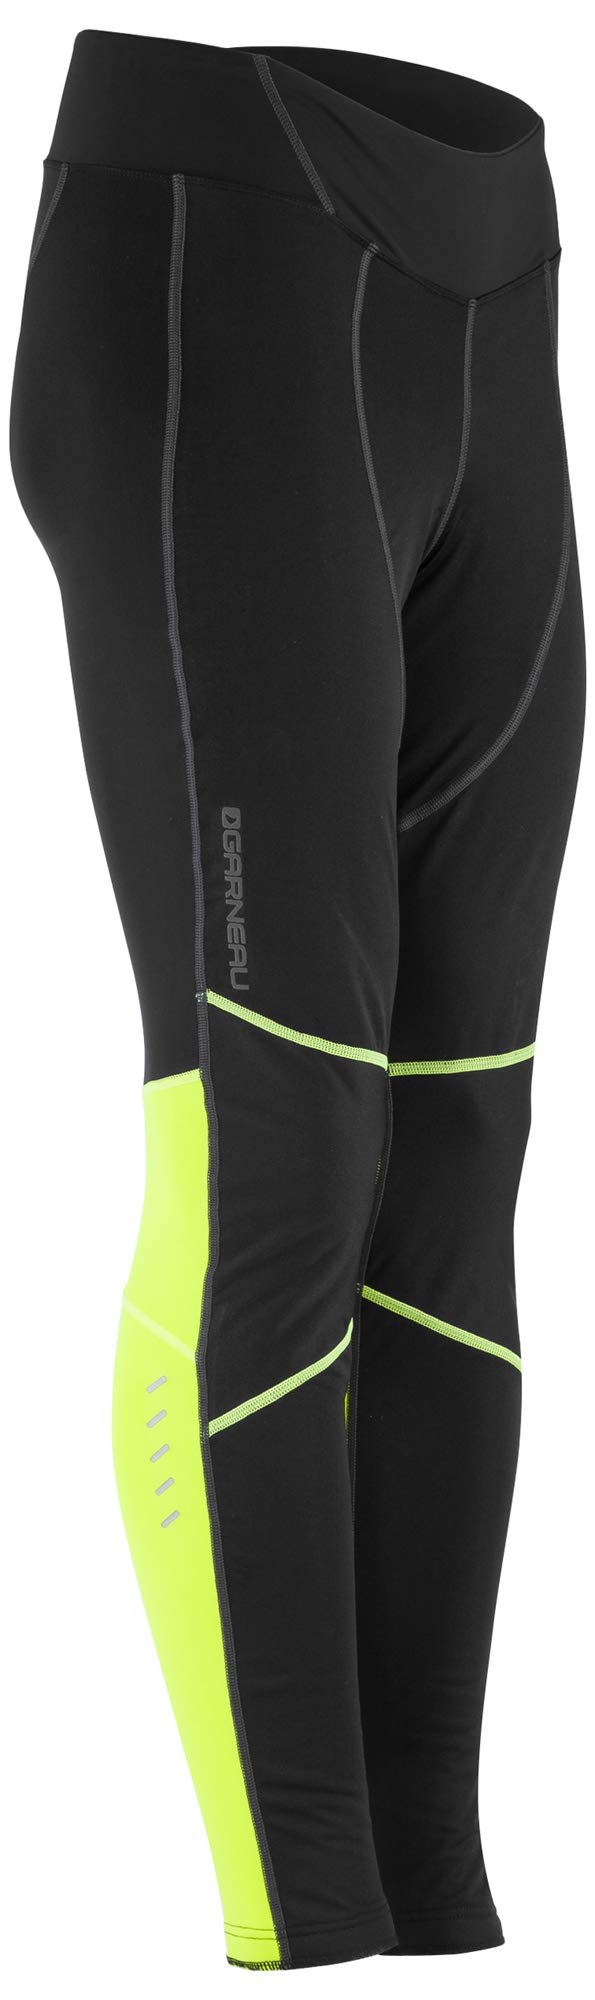 Louis Garneau Women's Solano 2 Breathable, Thermal Cycling Tights with Padded Chamois, Black/Yellow, X-Small by Louis Garneau